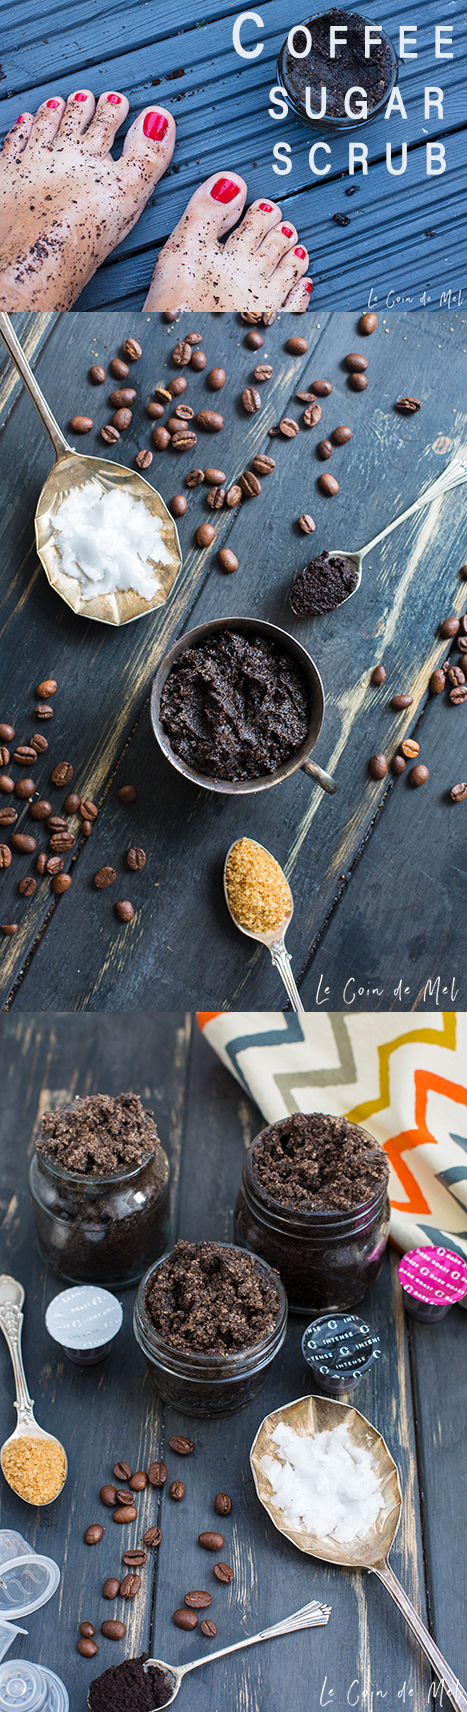 It's as easy as 1, 2, 3 to make this coffee sugar scrub, with only 3 ingredients: coffee grounds, coconut oil and demerara sugar. For soft, smooth skin!